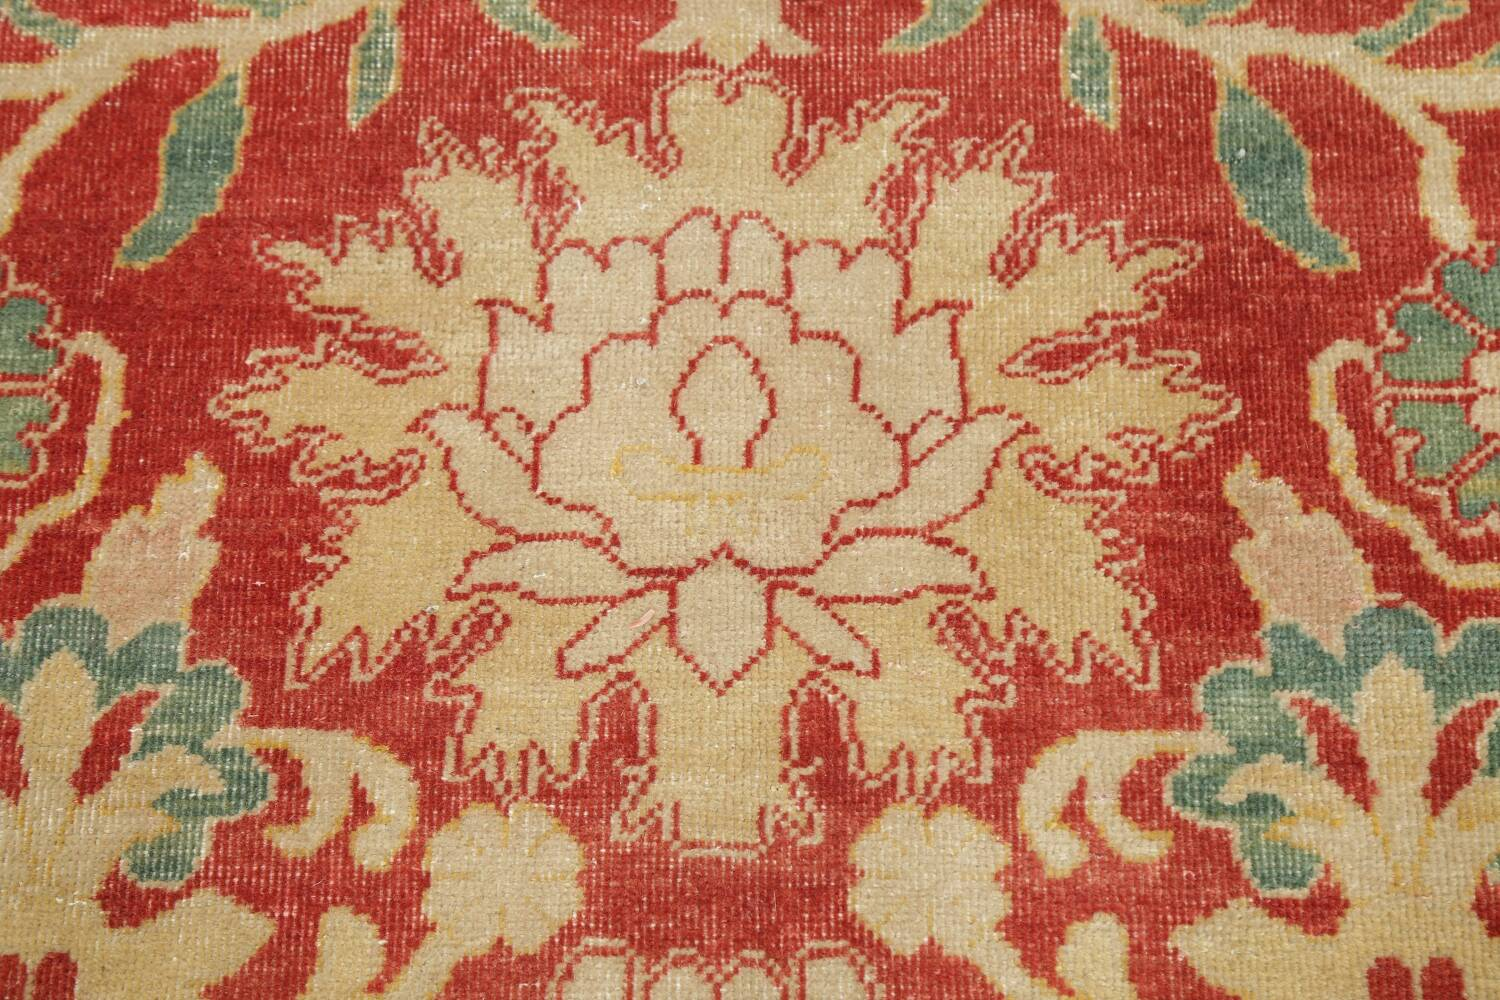 Floral Red Oushak Egyptian Area Rug 6x9 image 9